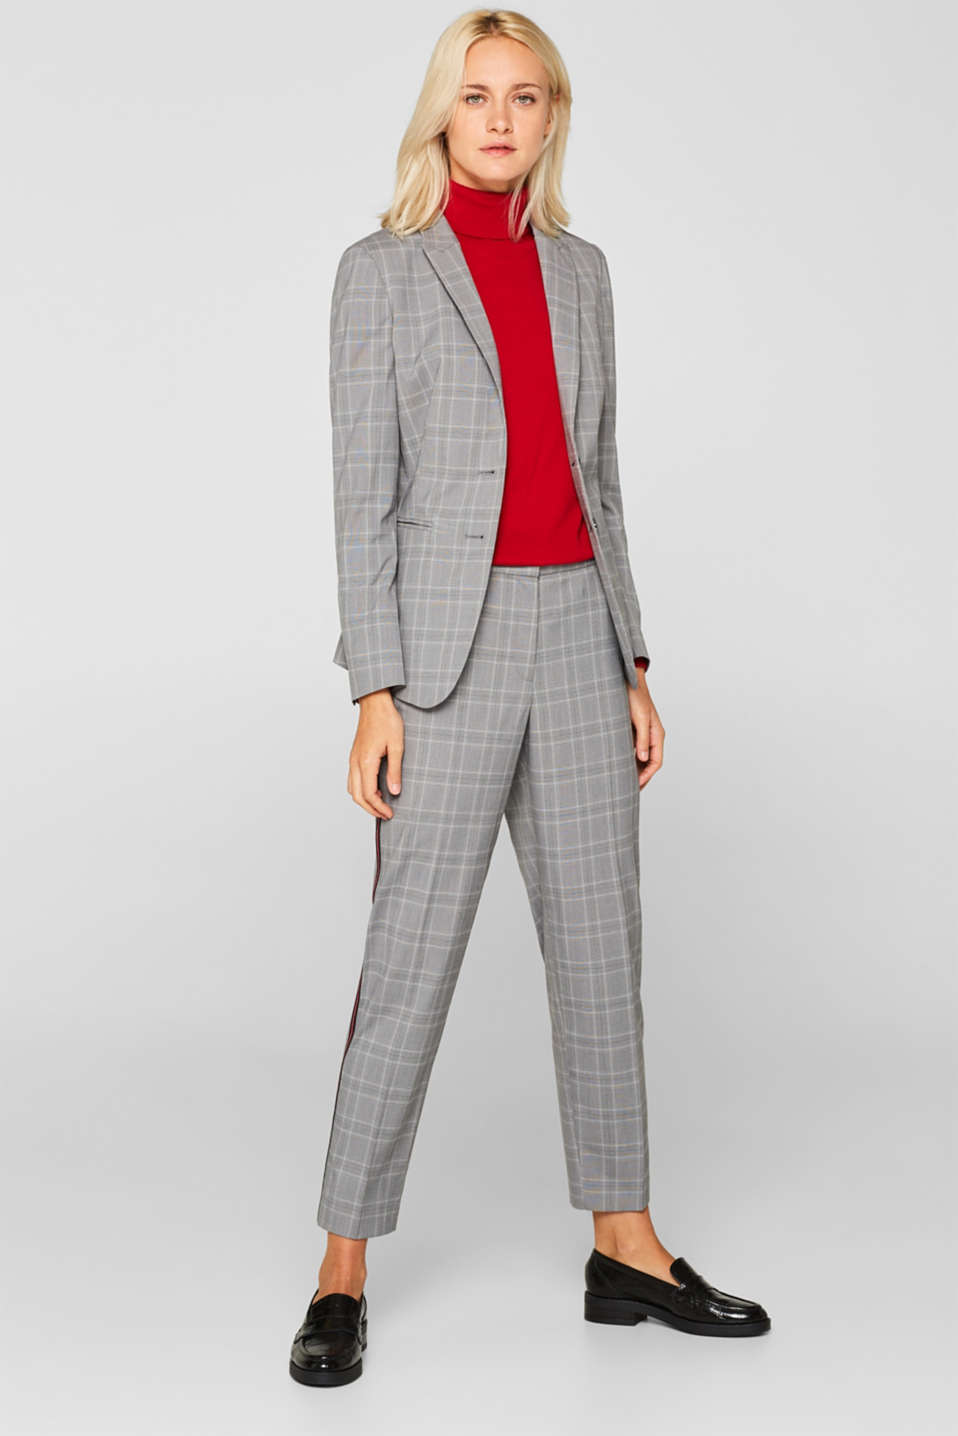 GLENCHECK mix + match stretch blazer, MEDIUM GREY, detail image number 1